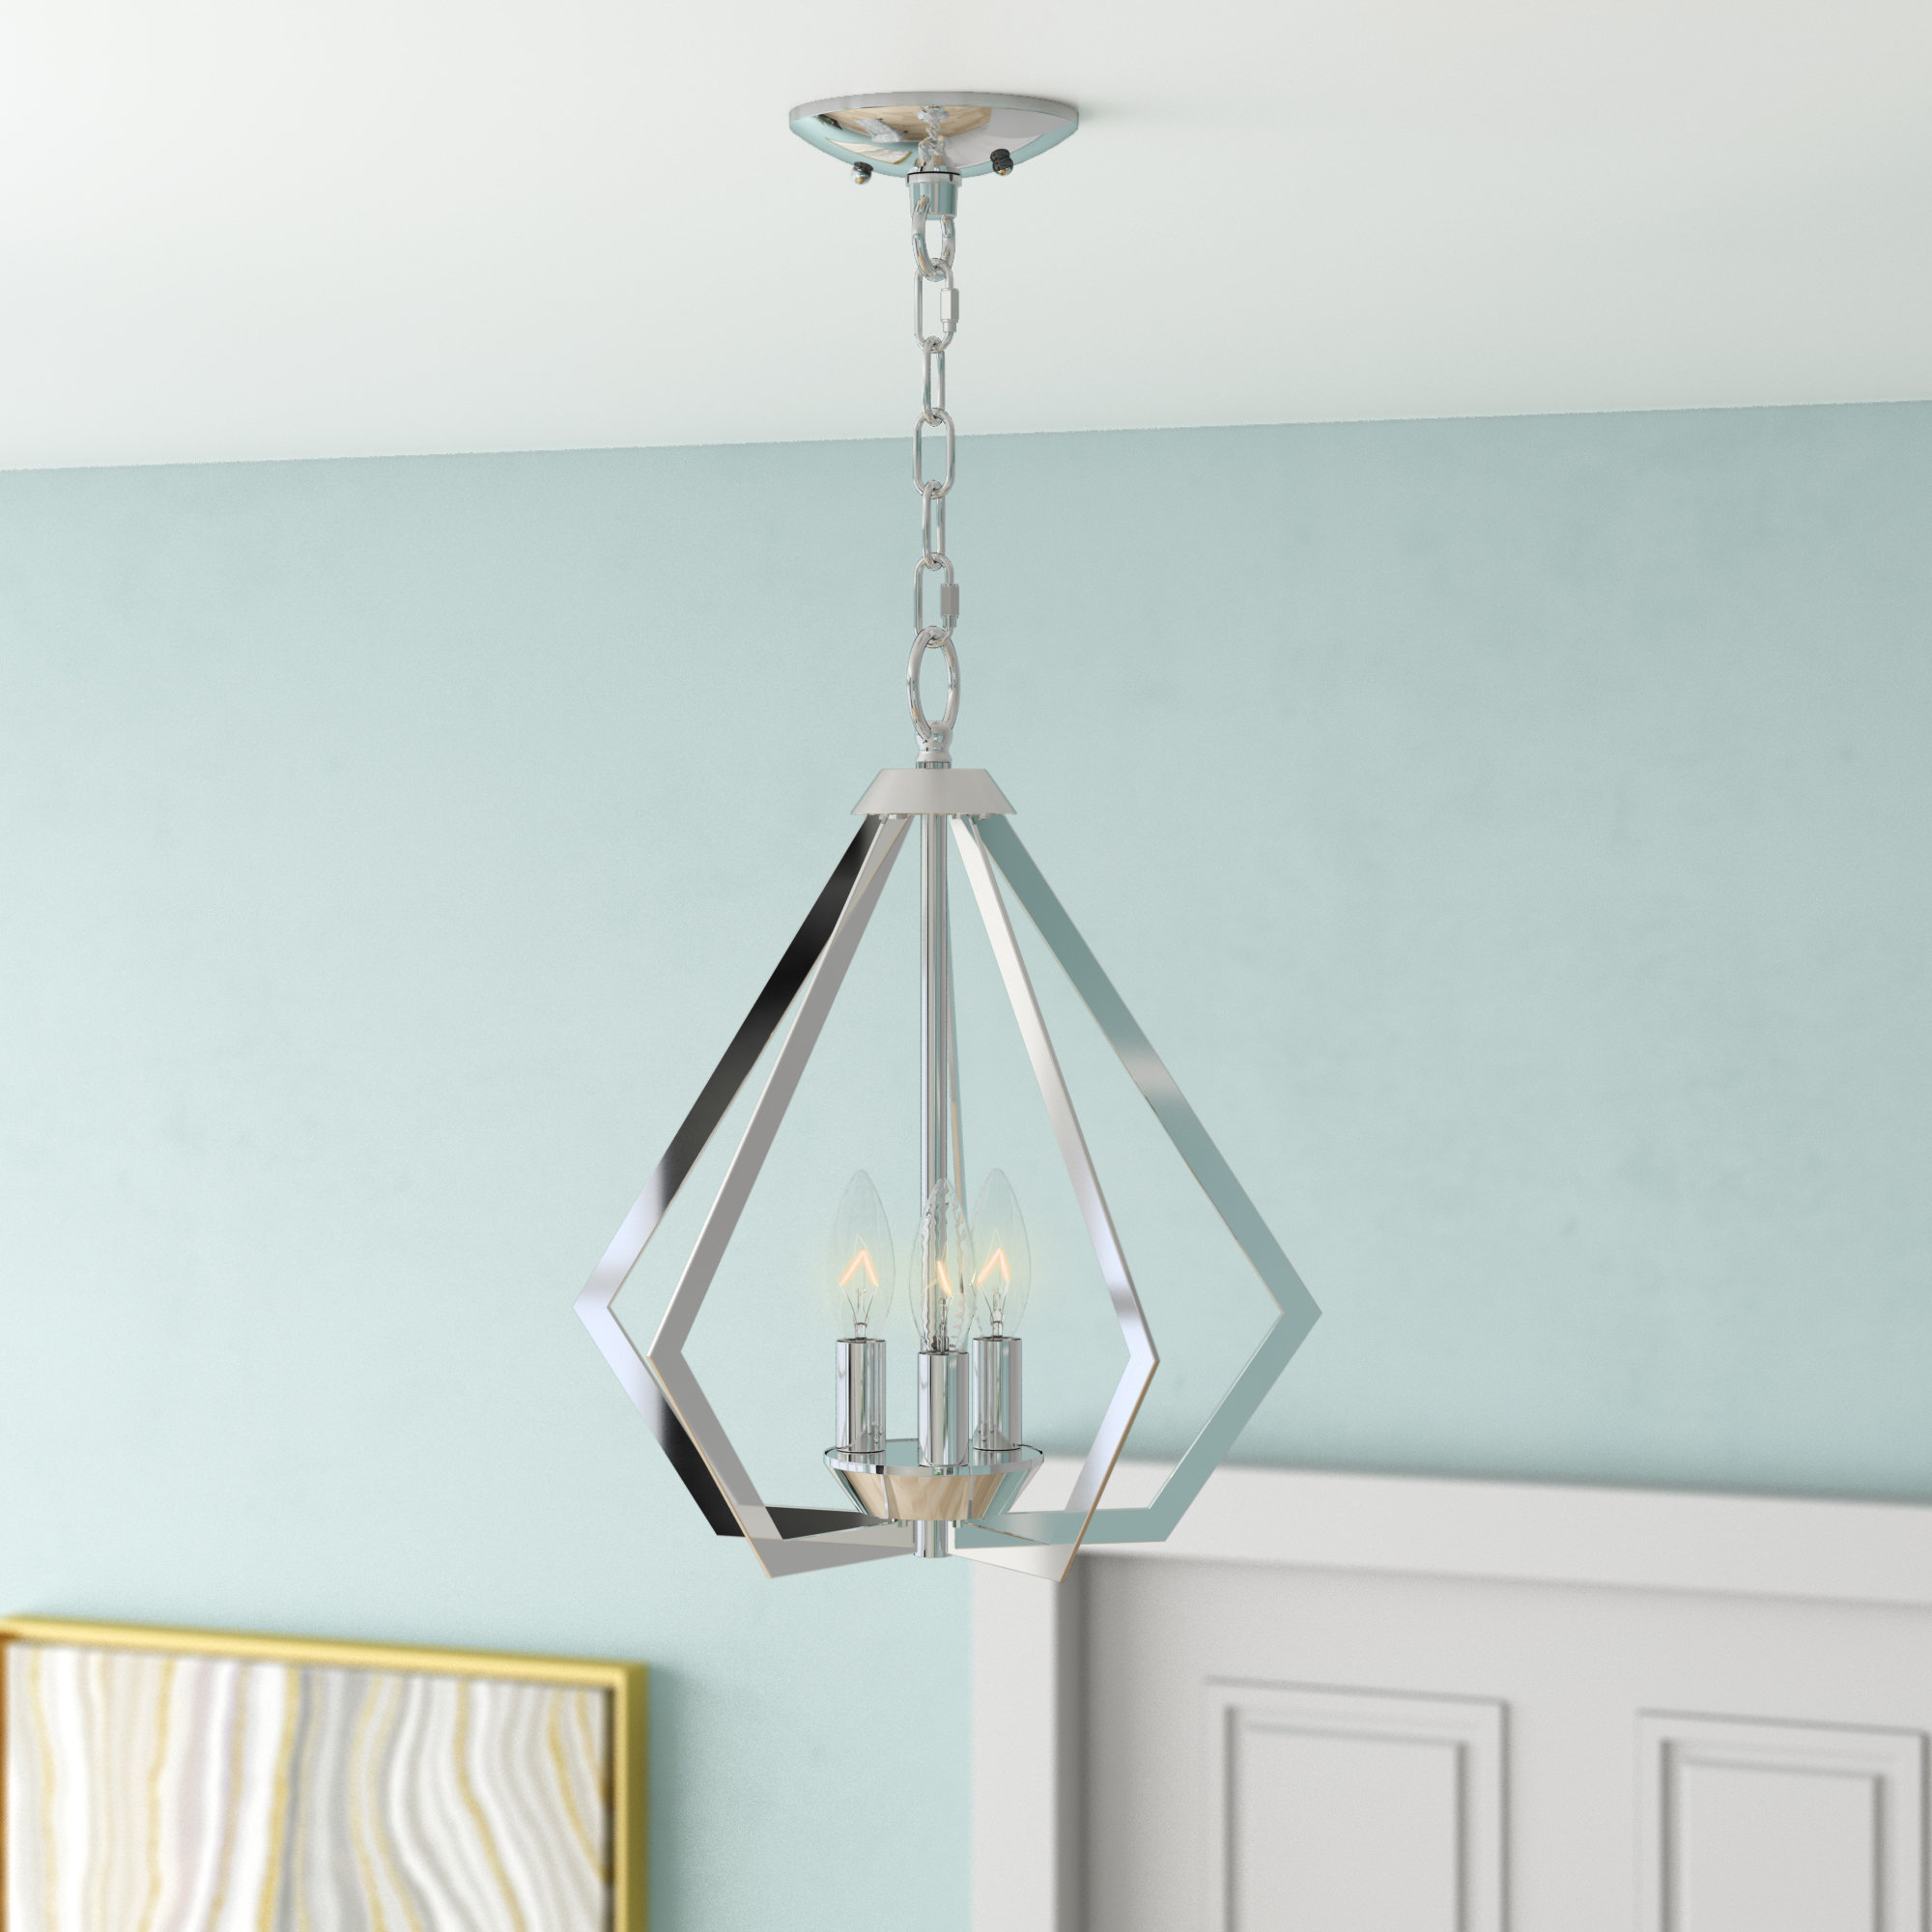 Isoline 2-Light Lantern Geometric Pendants regarding Most Popular Willa Arlo Interiors Borasisi 3-Light Lantern Geometric